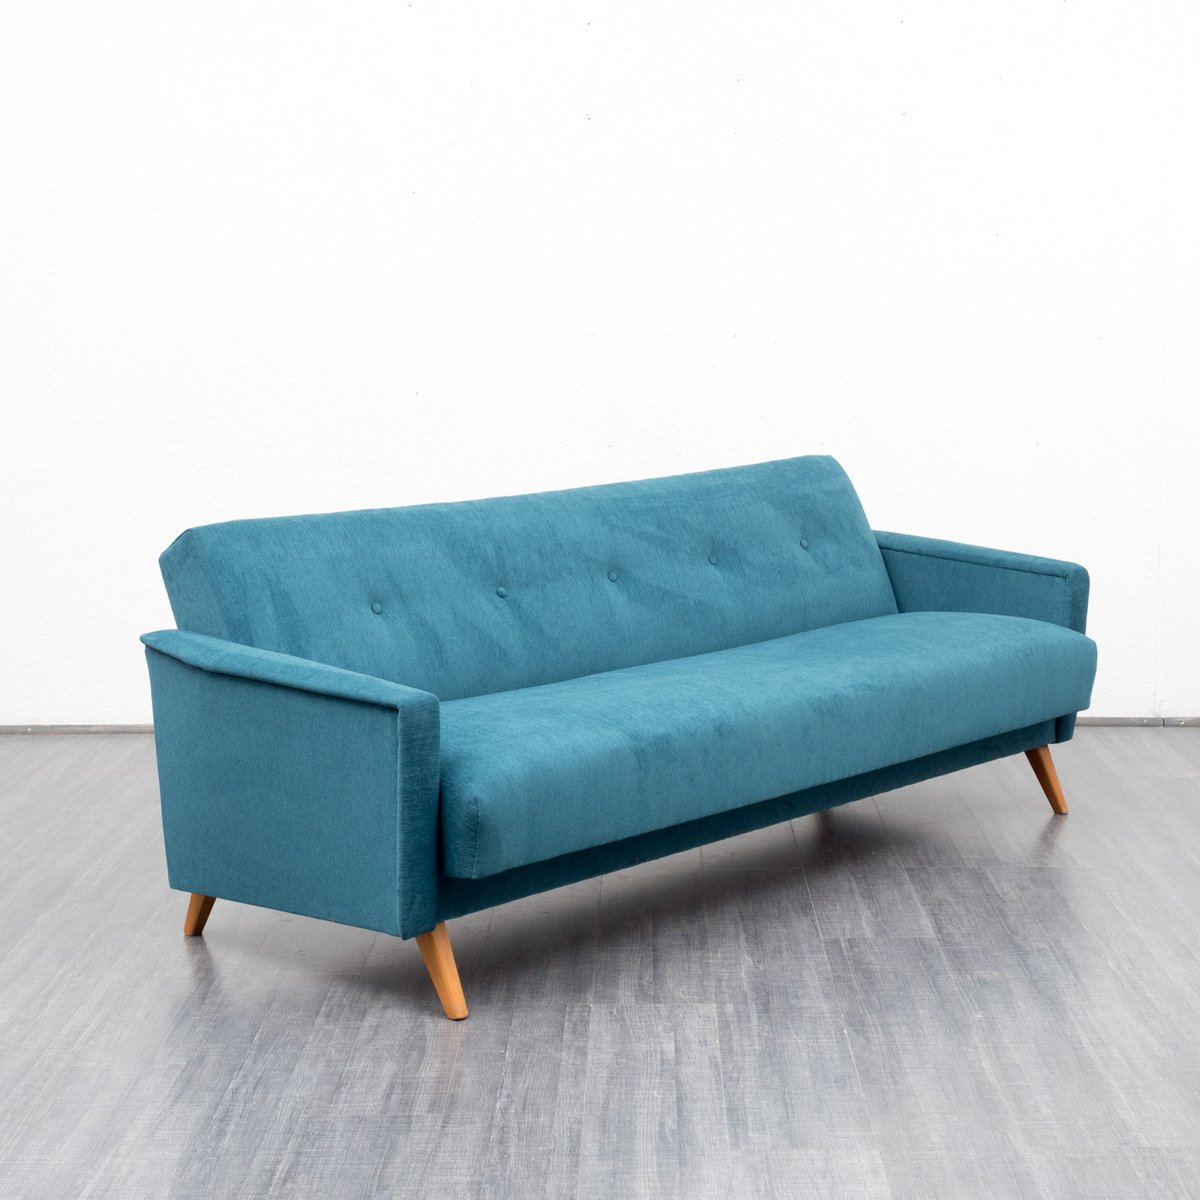 petrol blue velours couch and daybed 1950s for sale at pamono. Black Bedroom Furniture Sets. Home Design Ideas